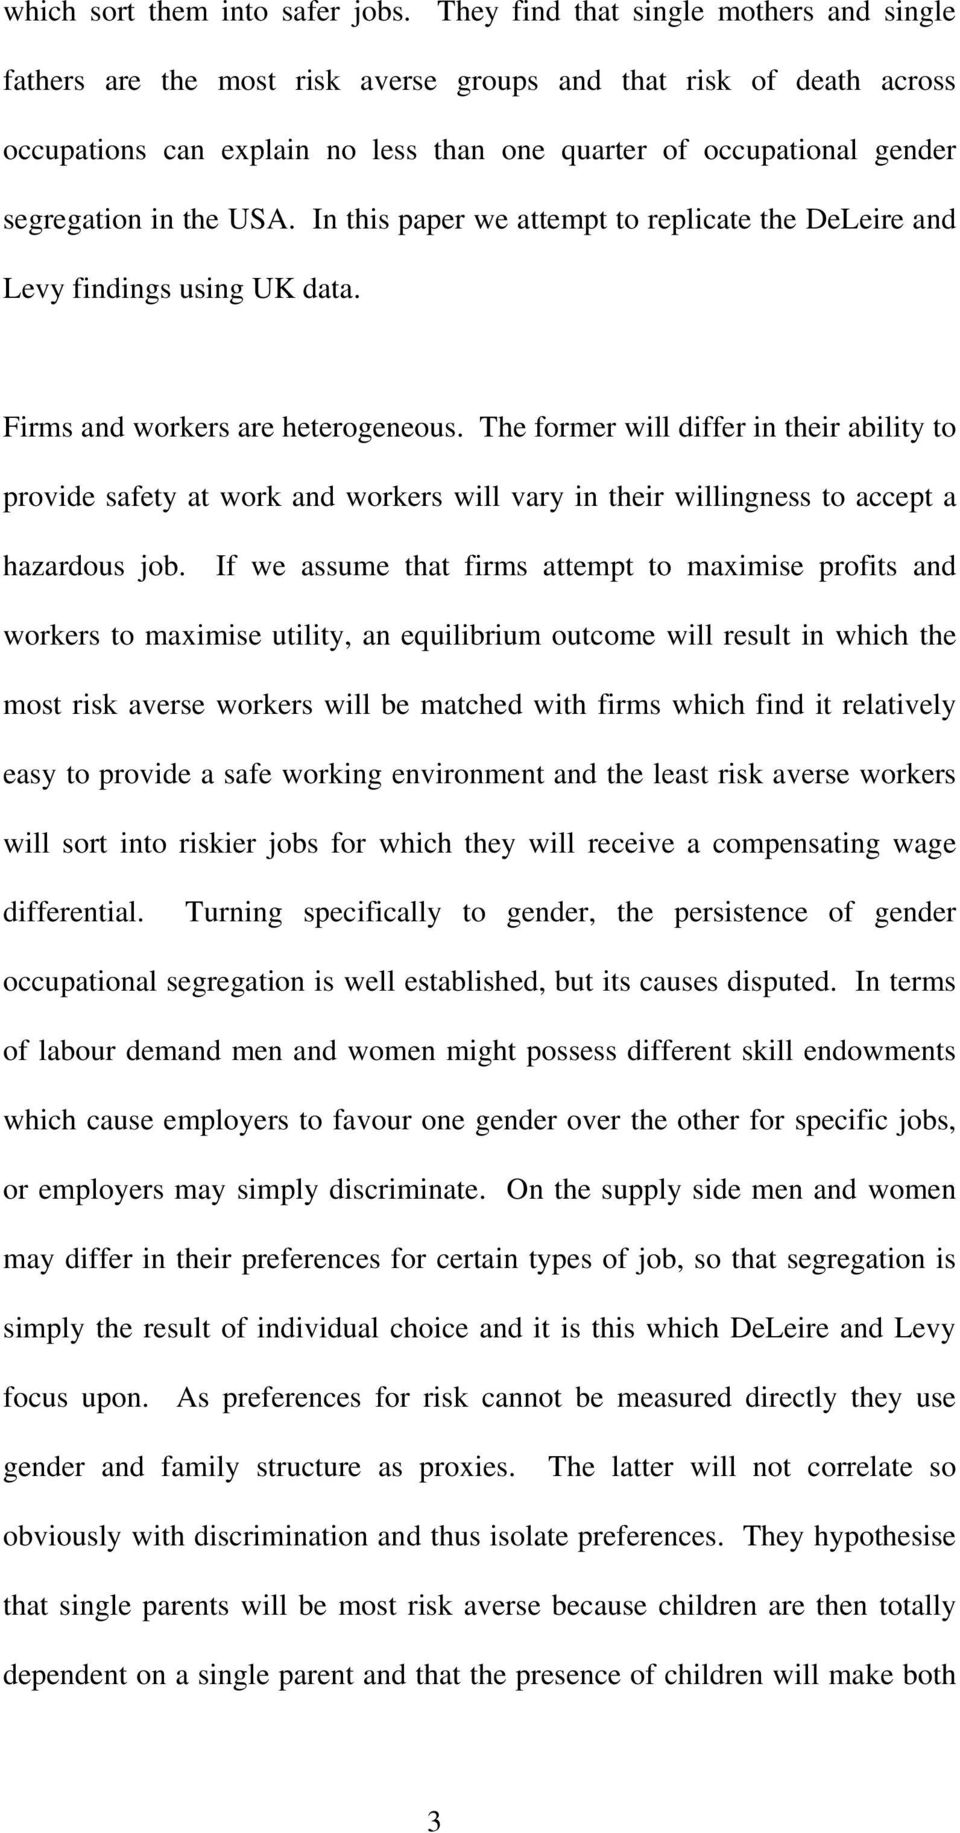 the USA. In this paper we attempt to replicate the DeLeire and Levy findings using UK data. Firms and workers are heterogeneous.